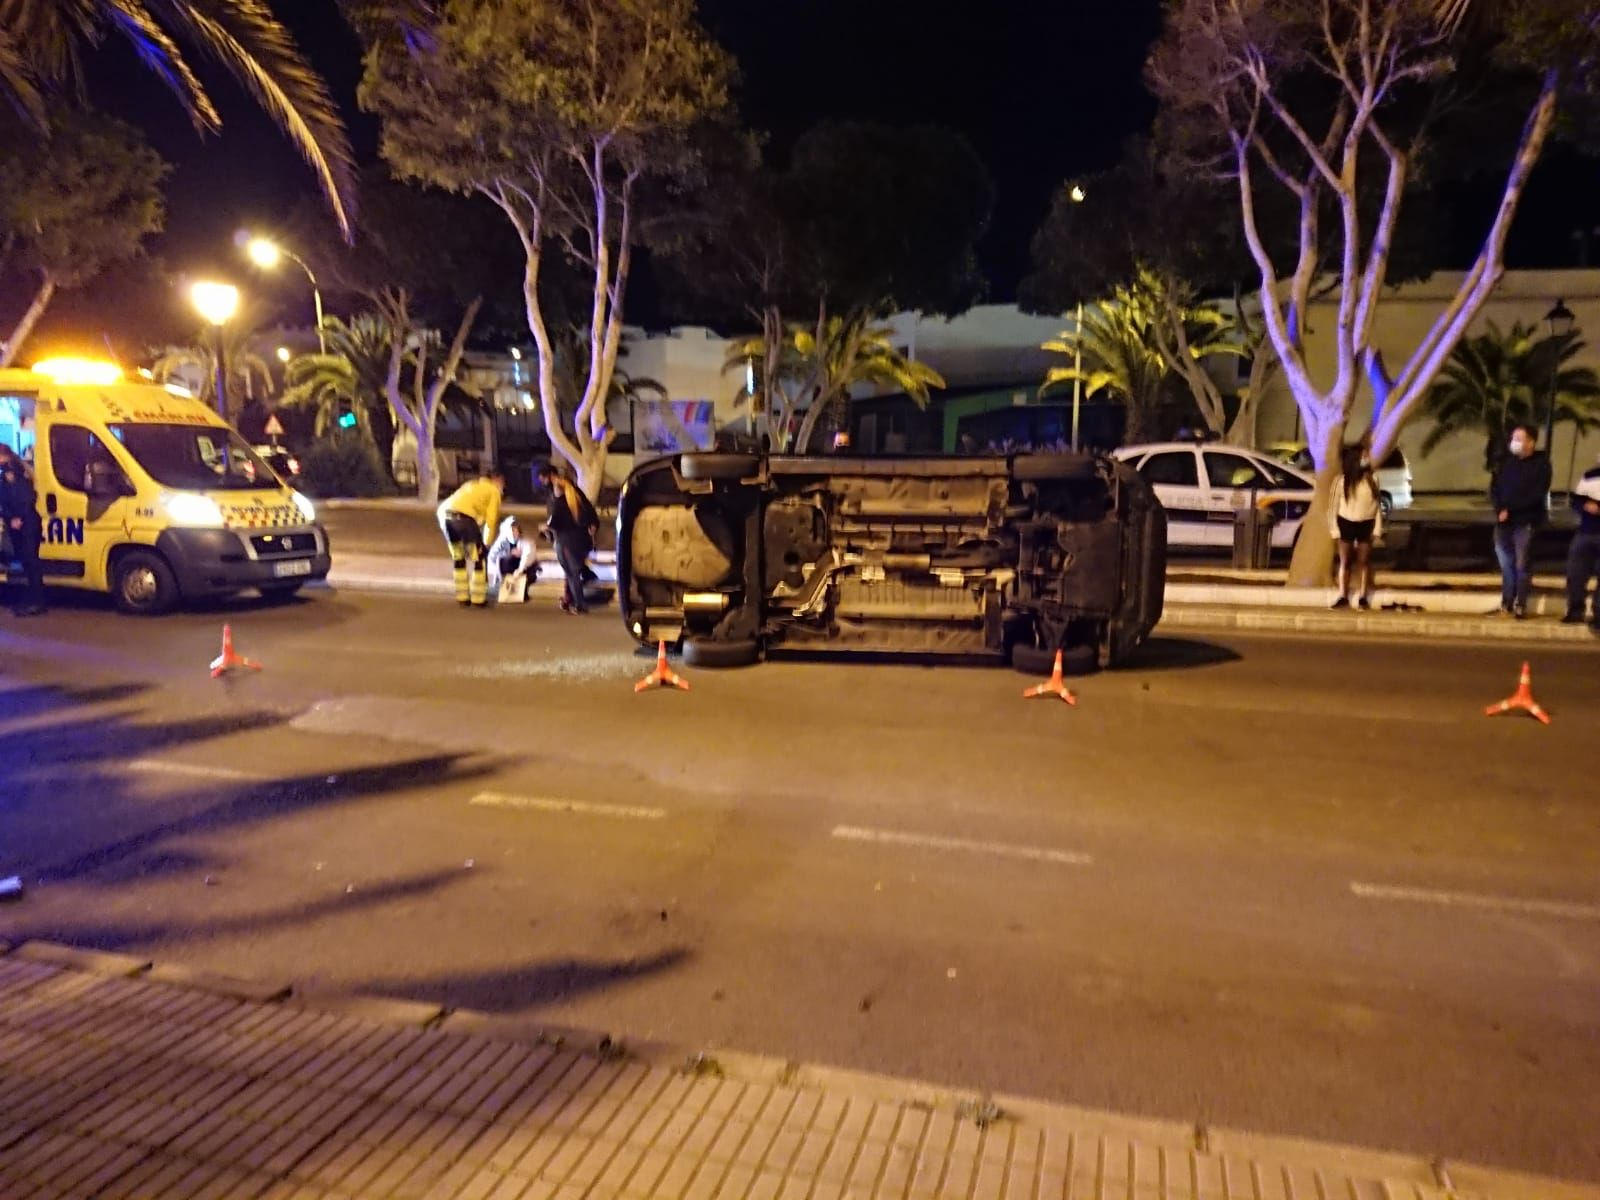 Vuelco de un coche en la Rambla Medular de Arrecife